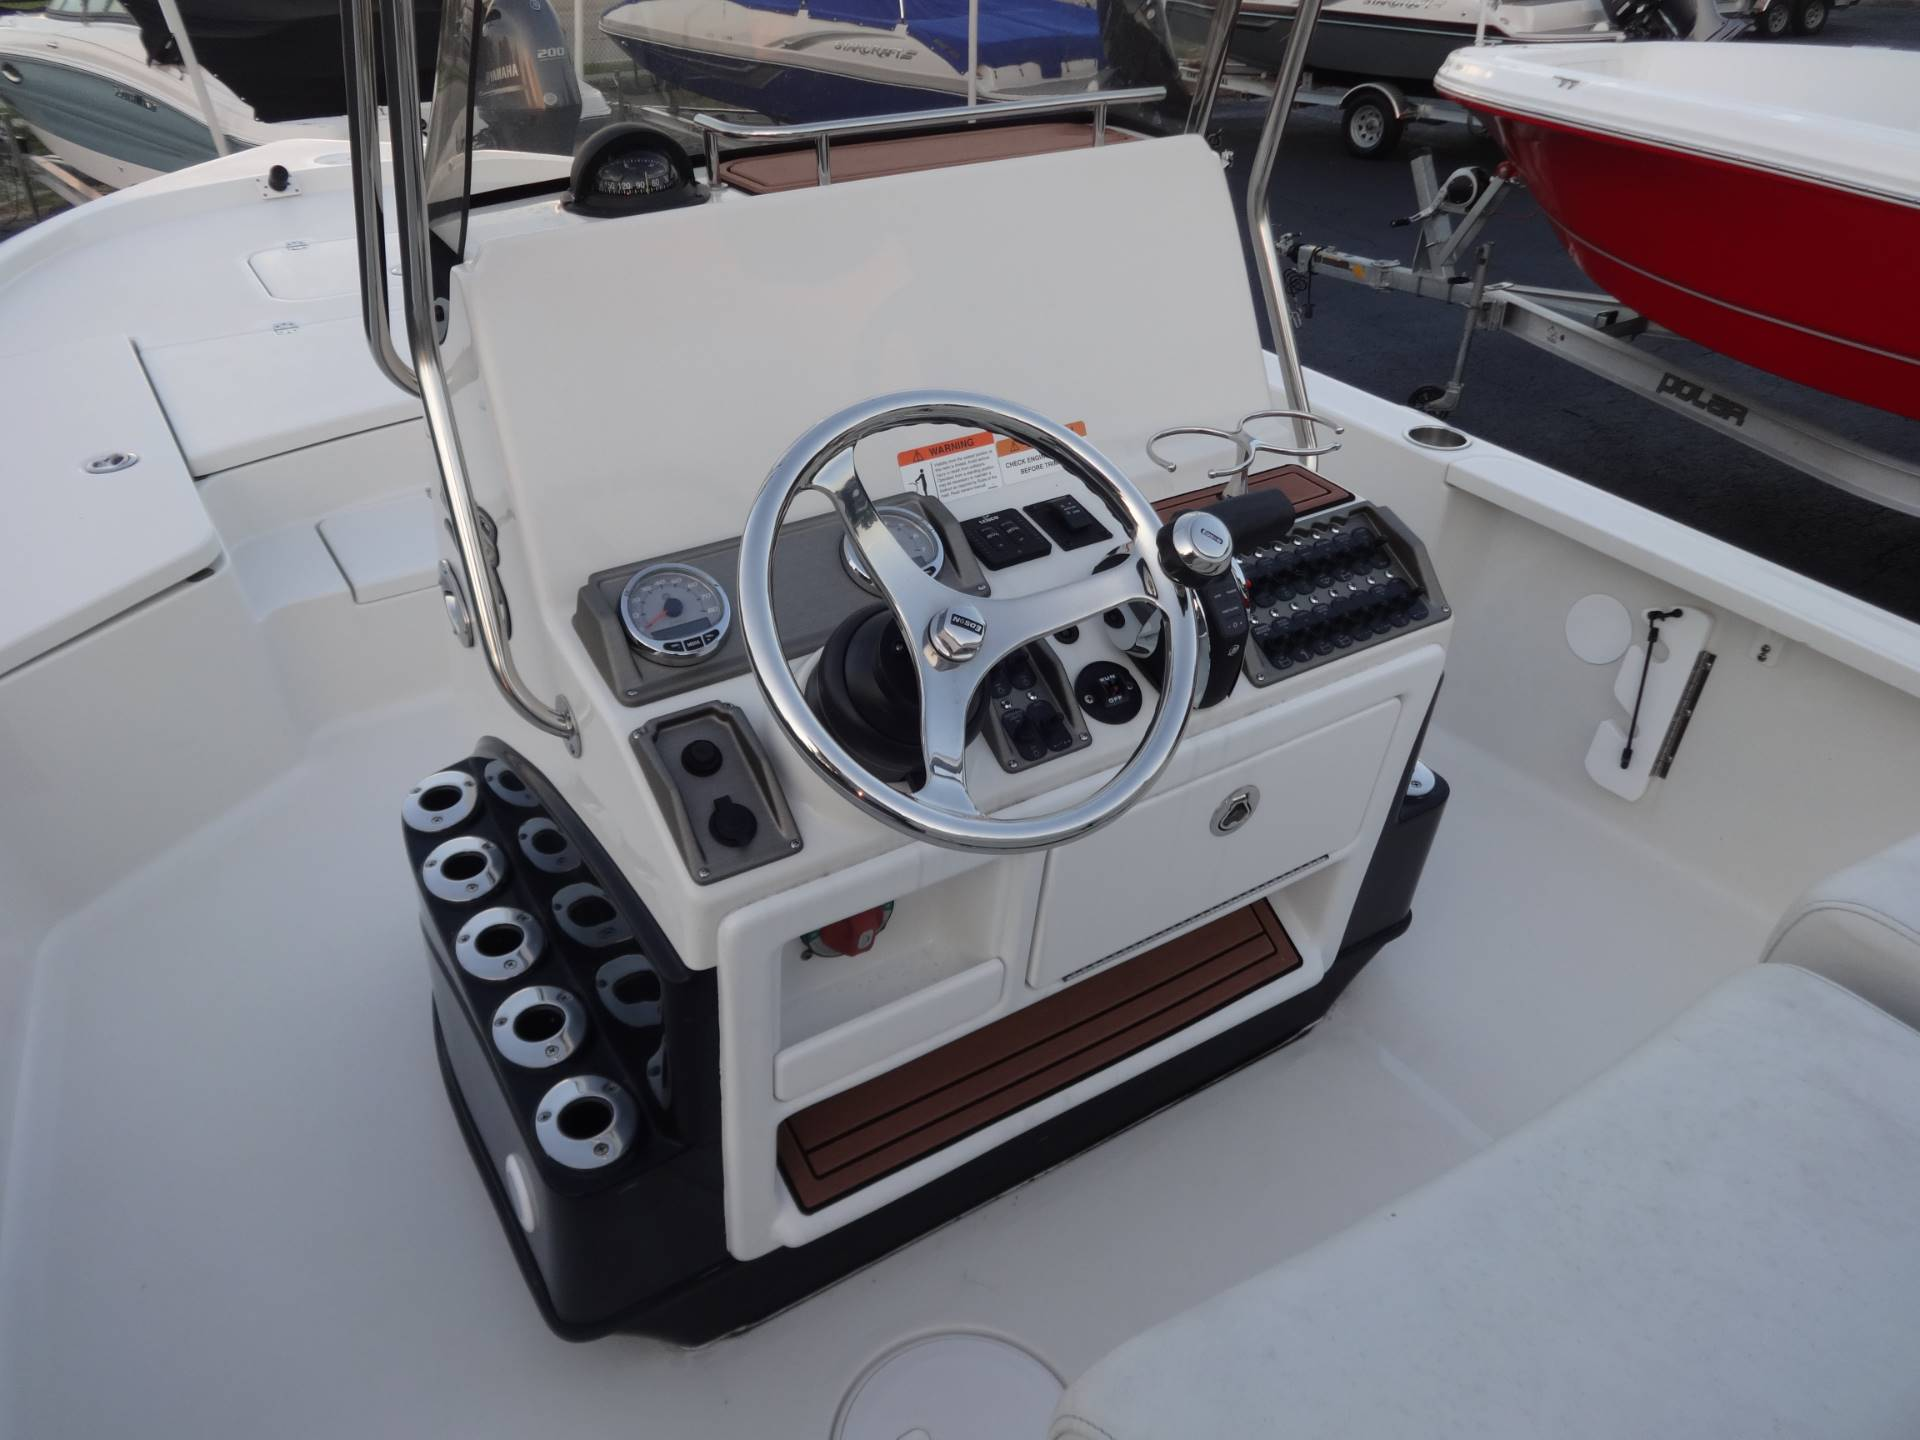 2018 Triton 220 LTS PRO in Holiday, Florida - Photo 20